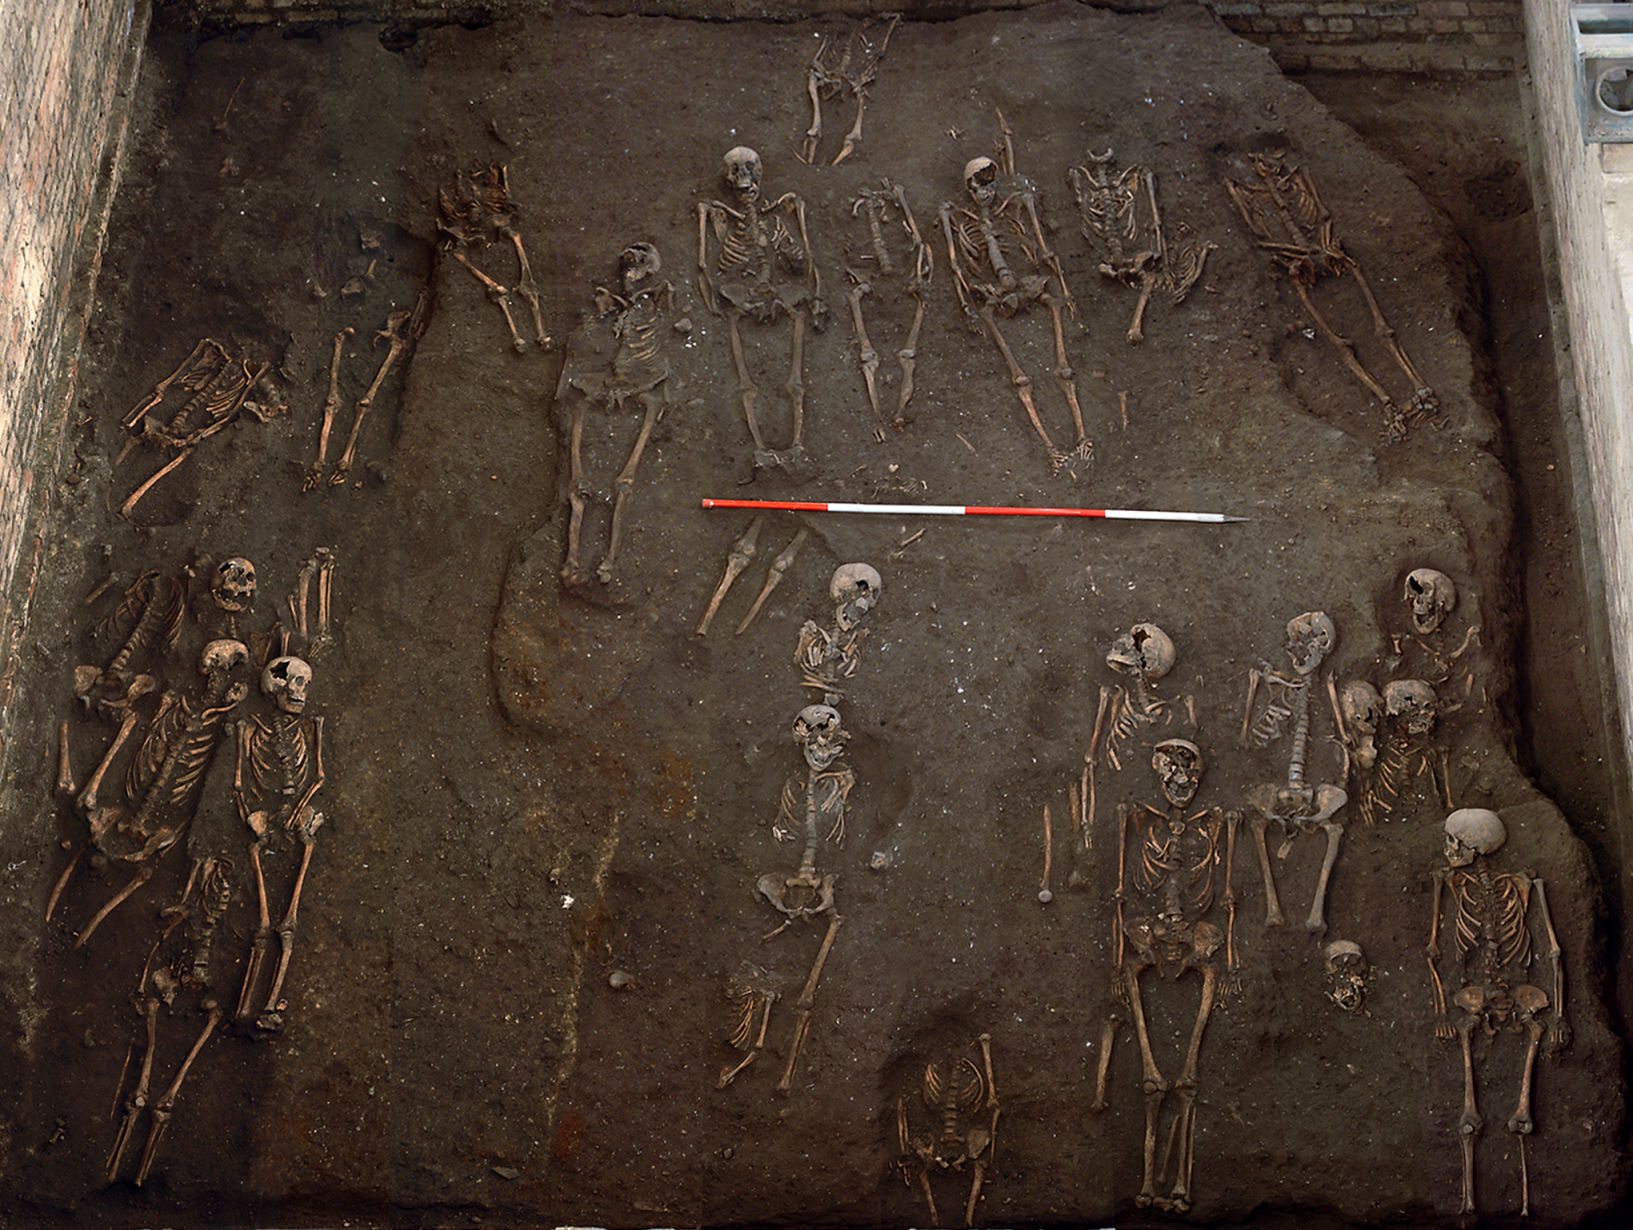 The remains of individuals unearthed on the former site of the Hospital of St John the Evangelist